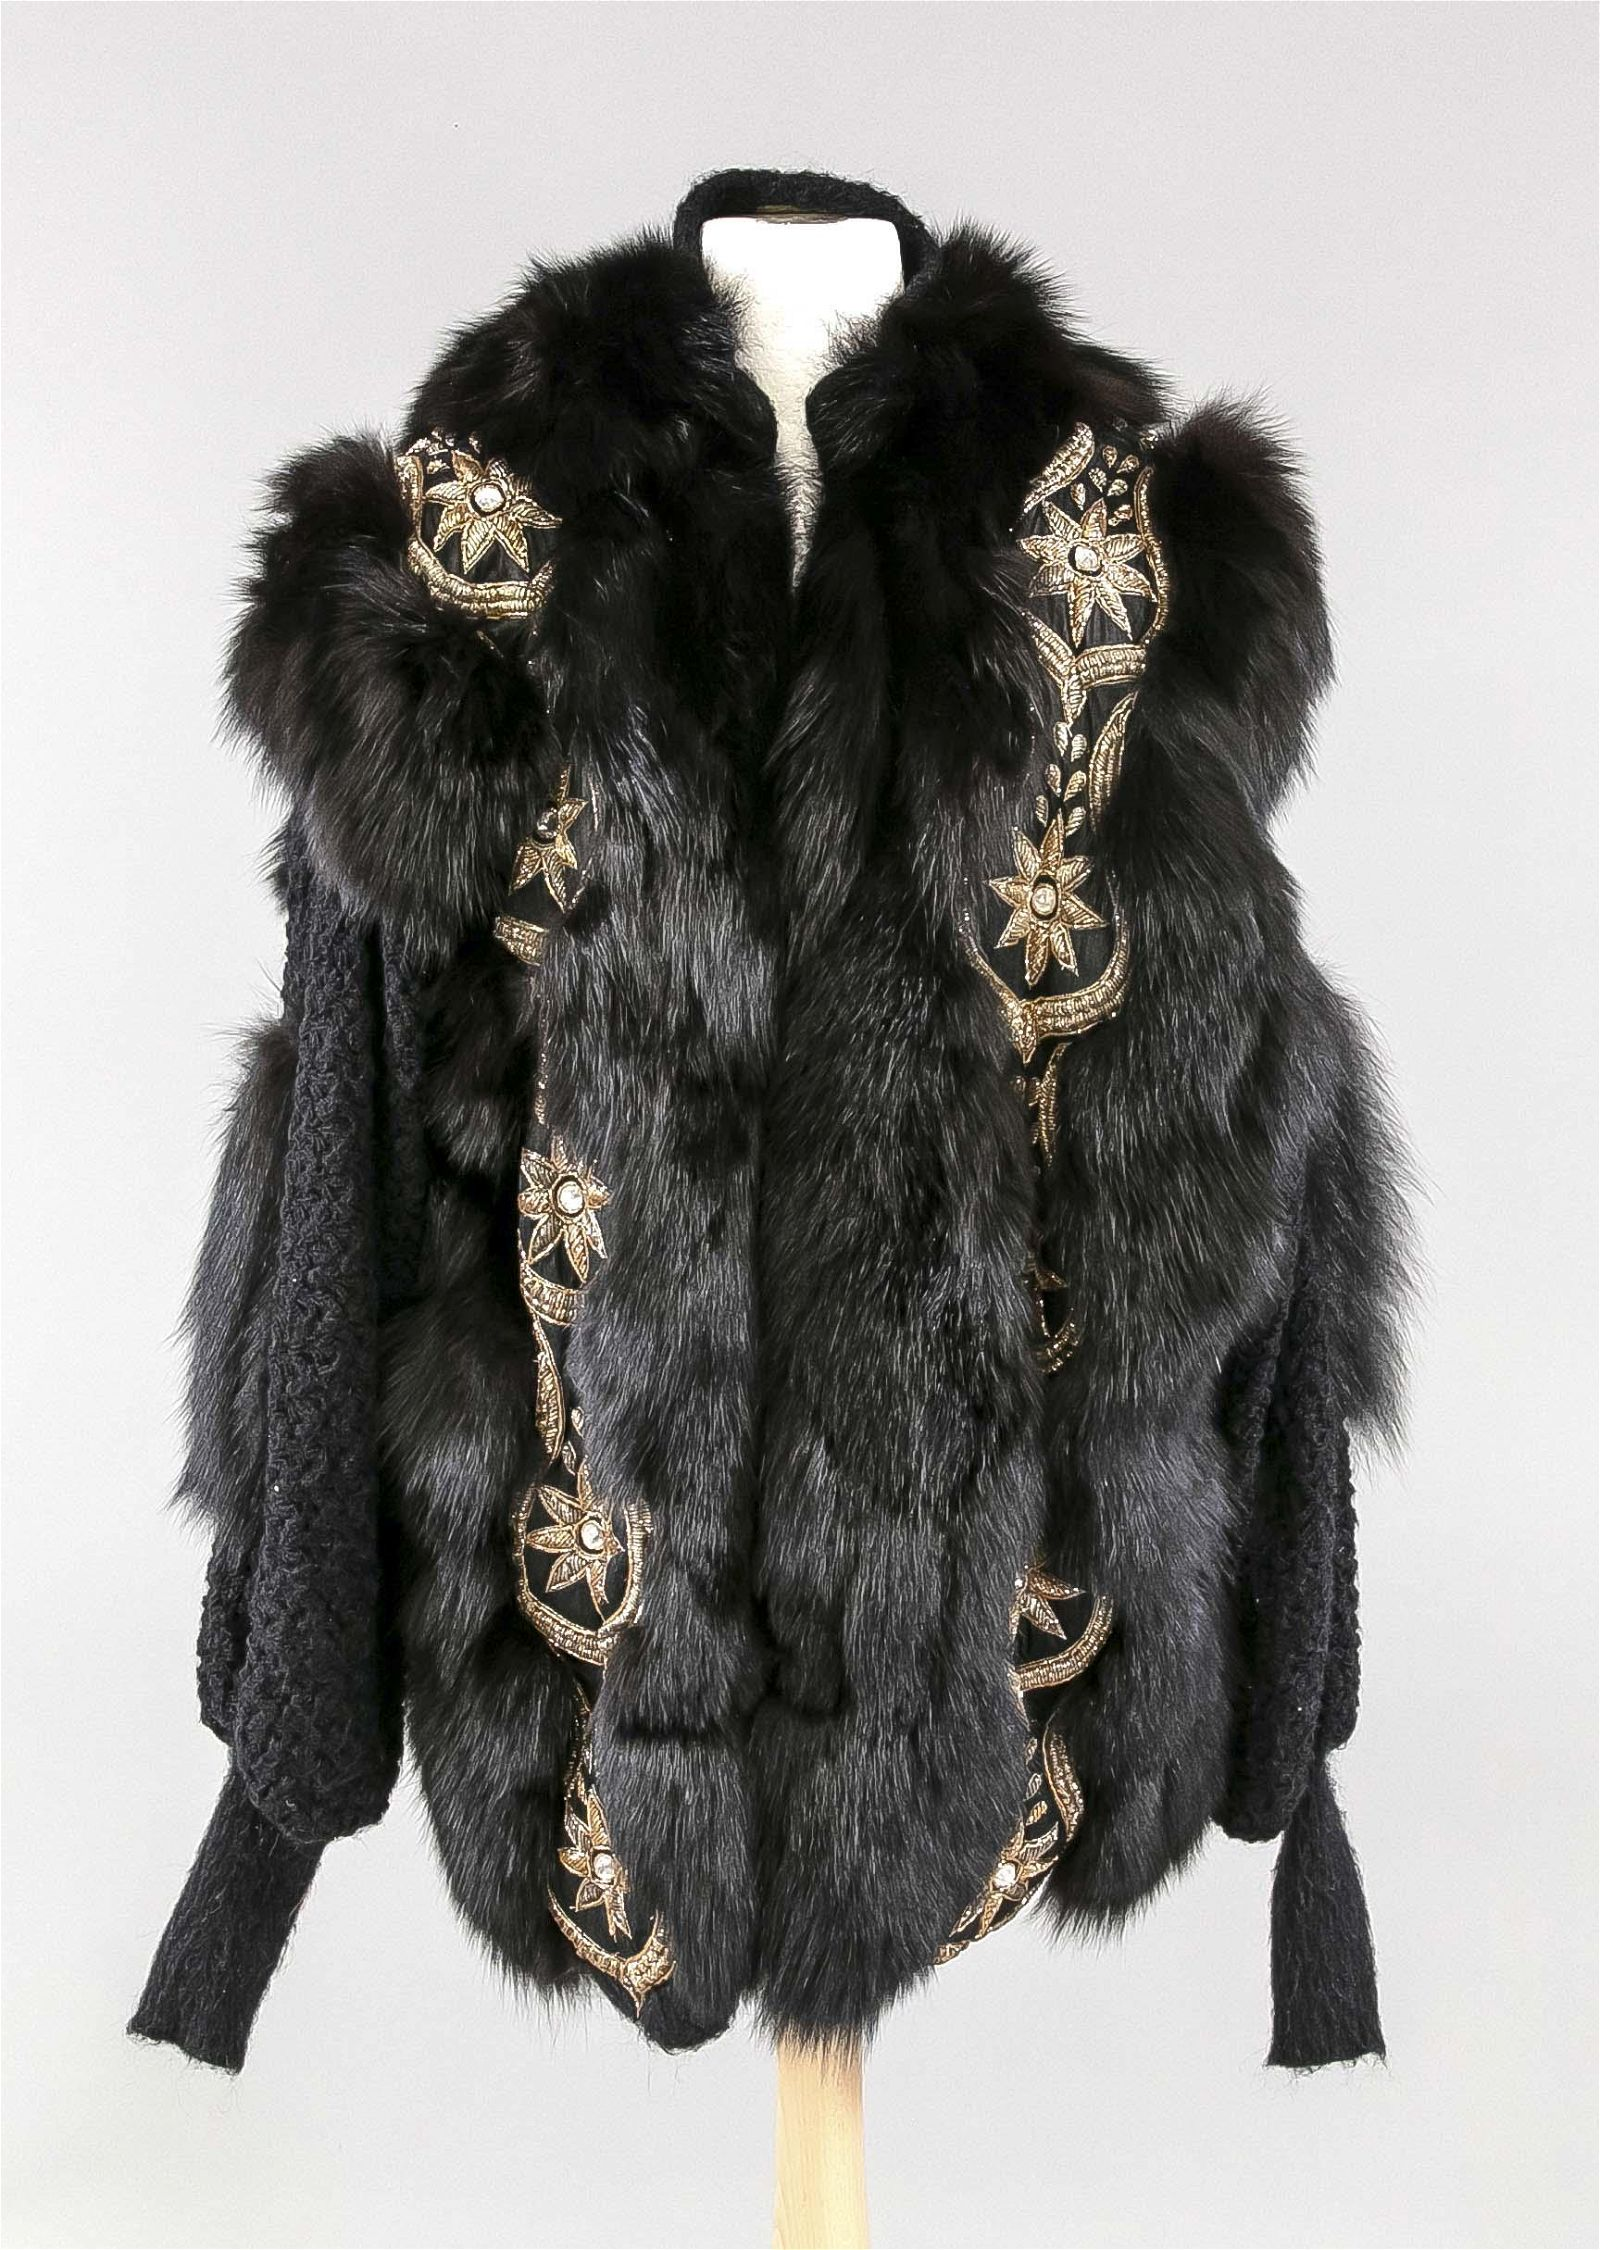 Fur jacket, on a label in the